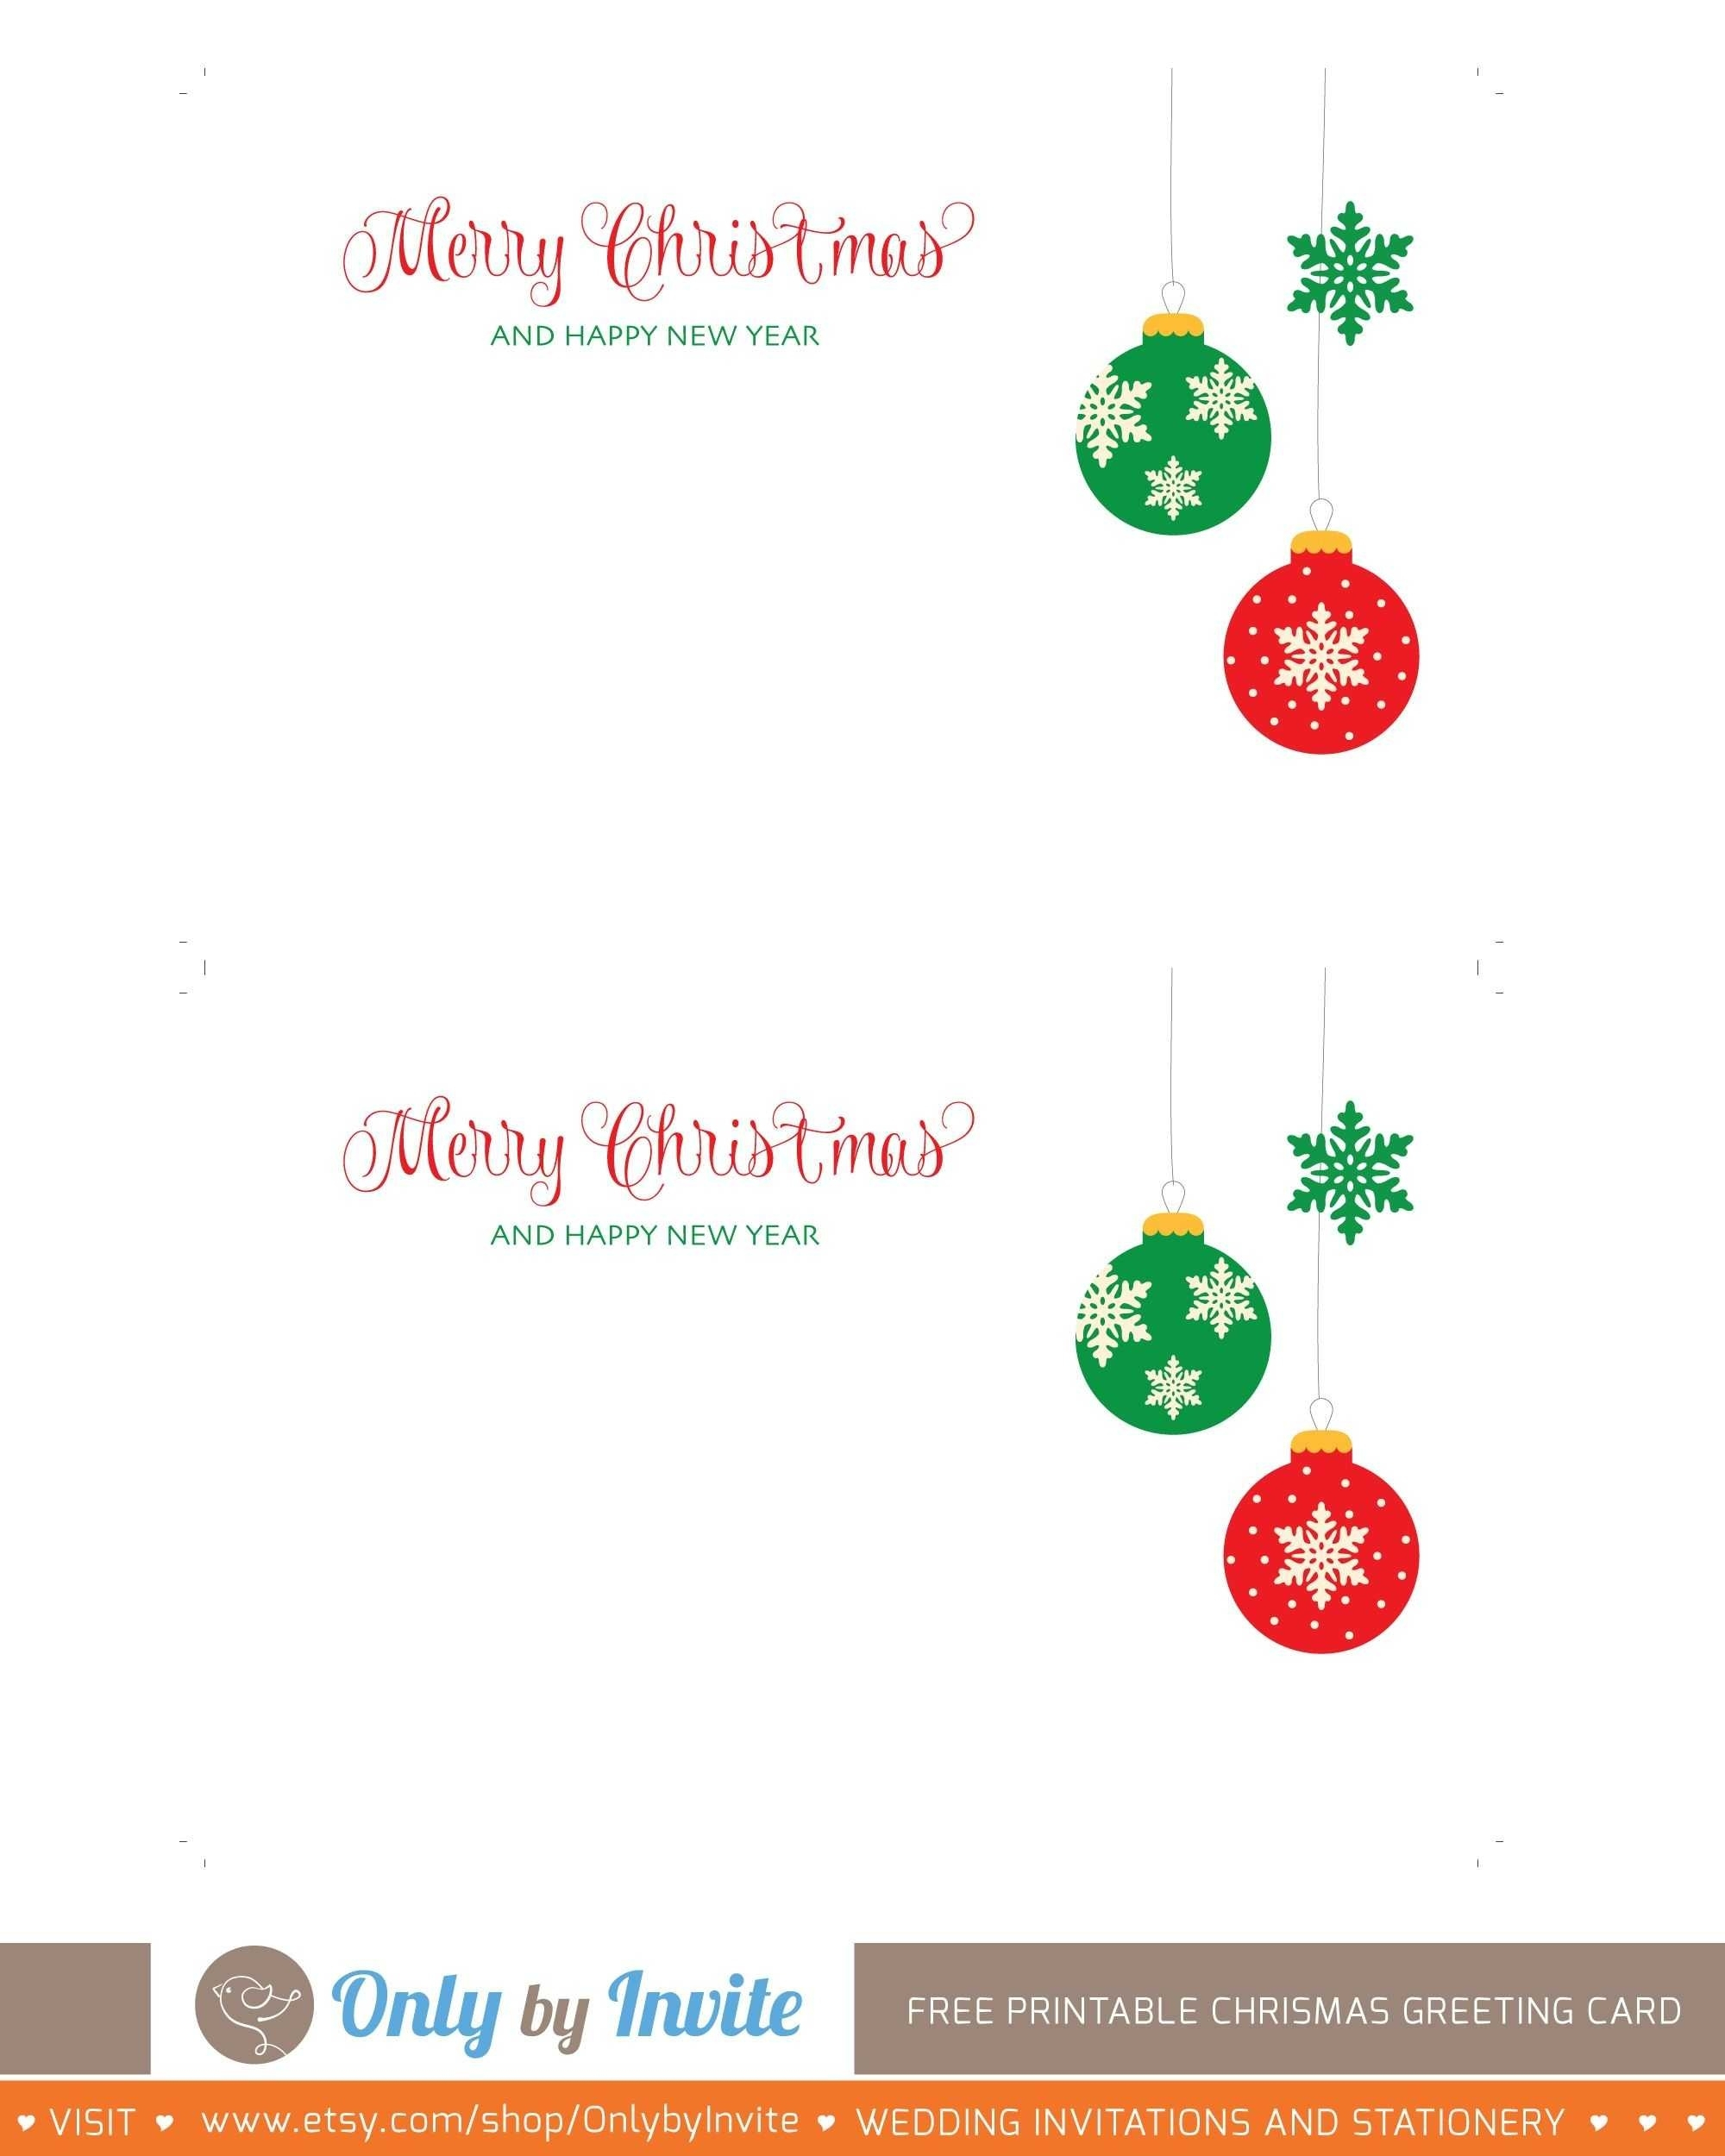 Template Greeting Card Free Printable | World Of Label - Free Printable Military Greeting Cards